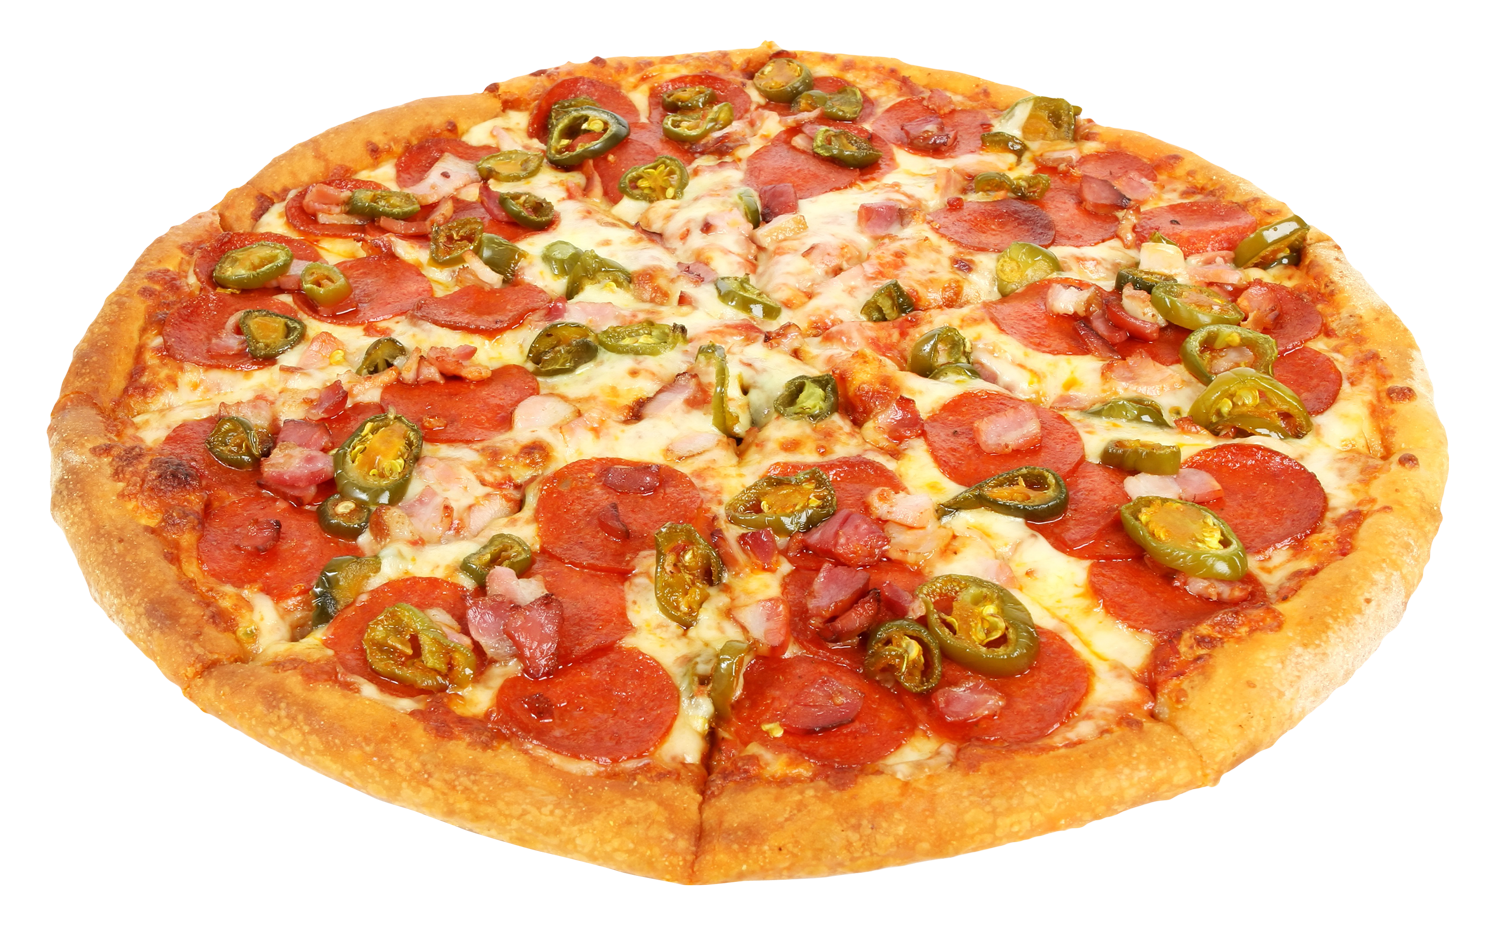 Pizza png transparent. Cheese image purepng free